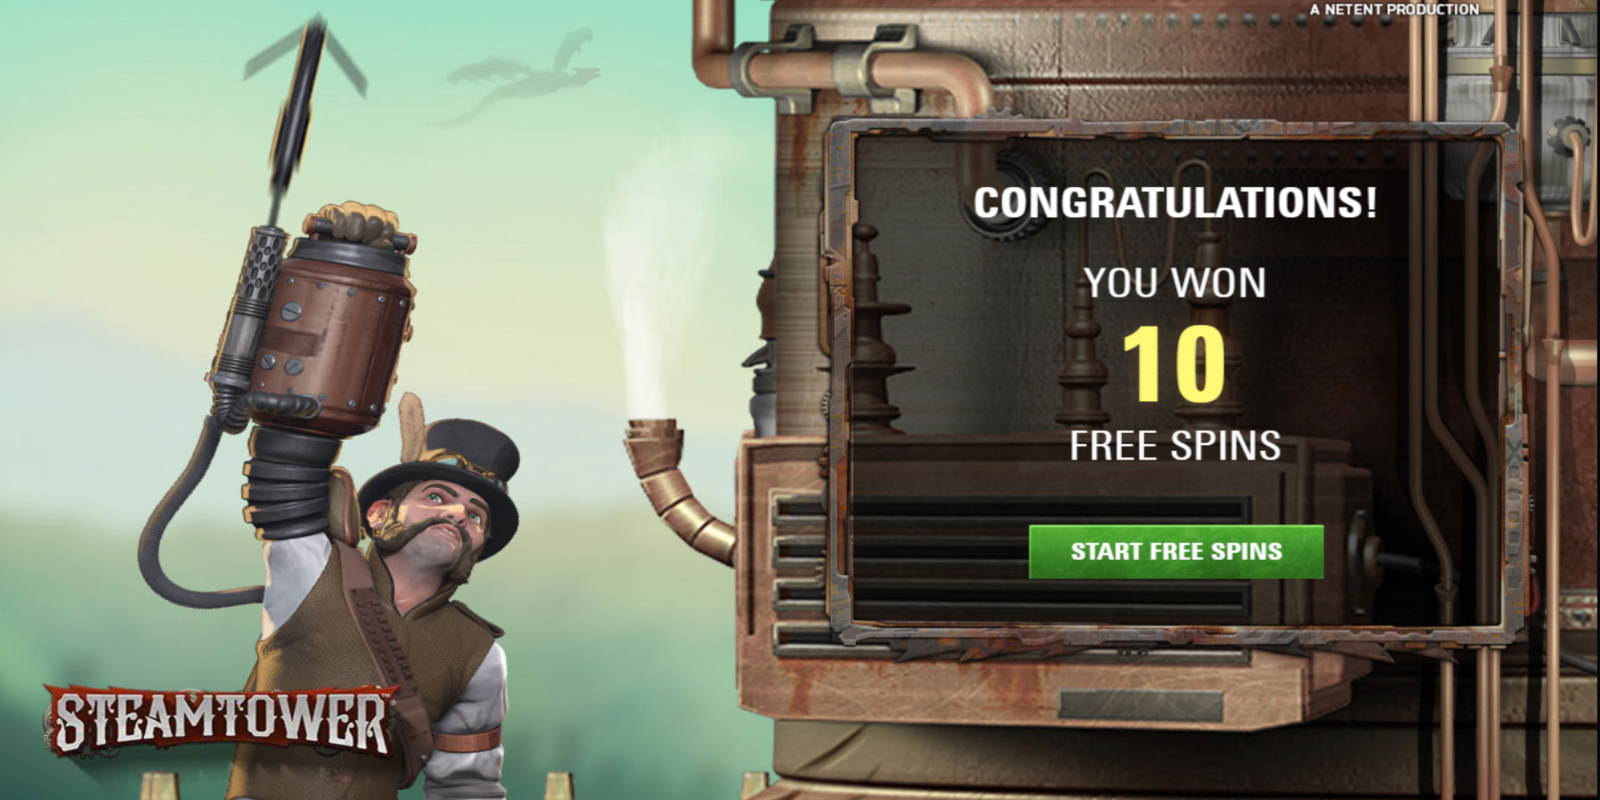 Steam Tower slot game Free Spins Win